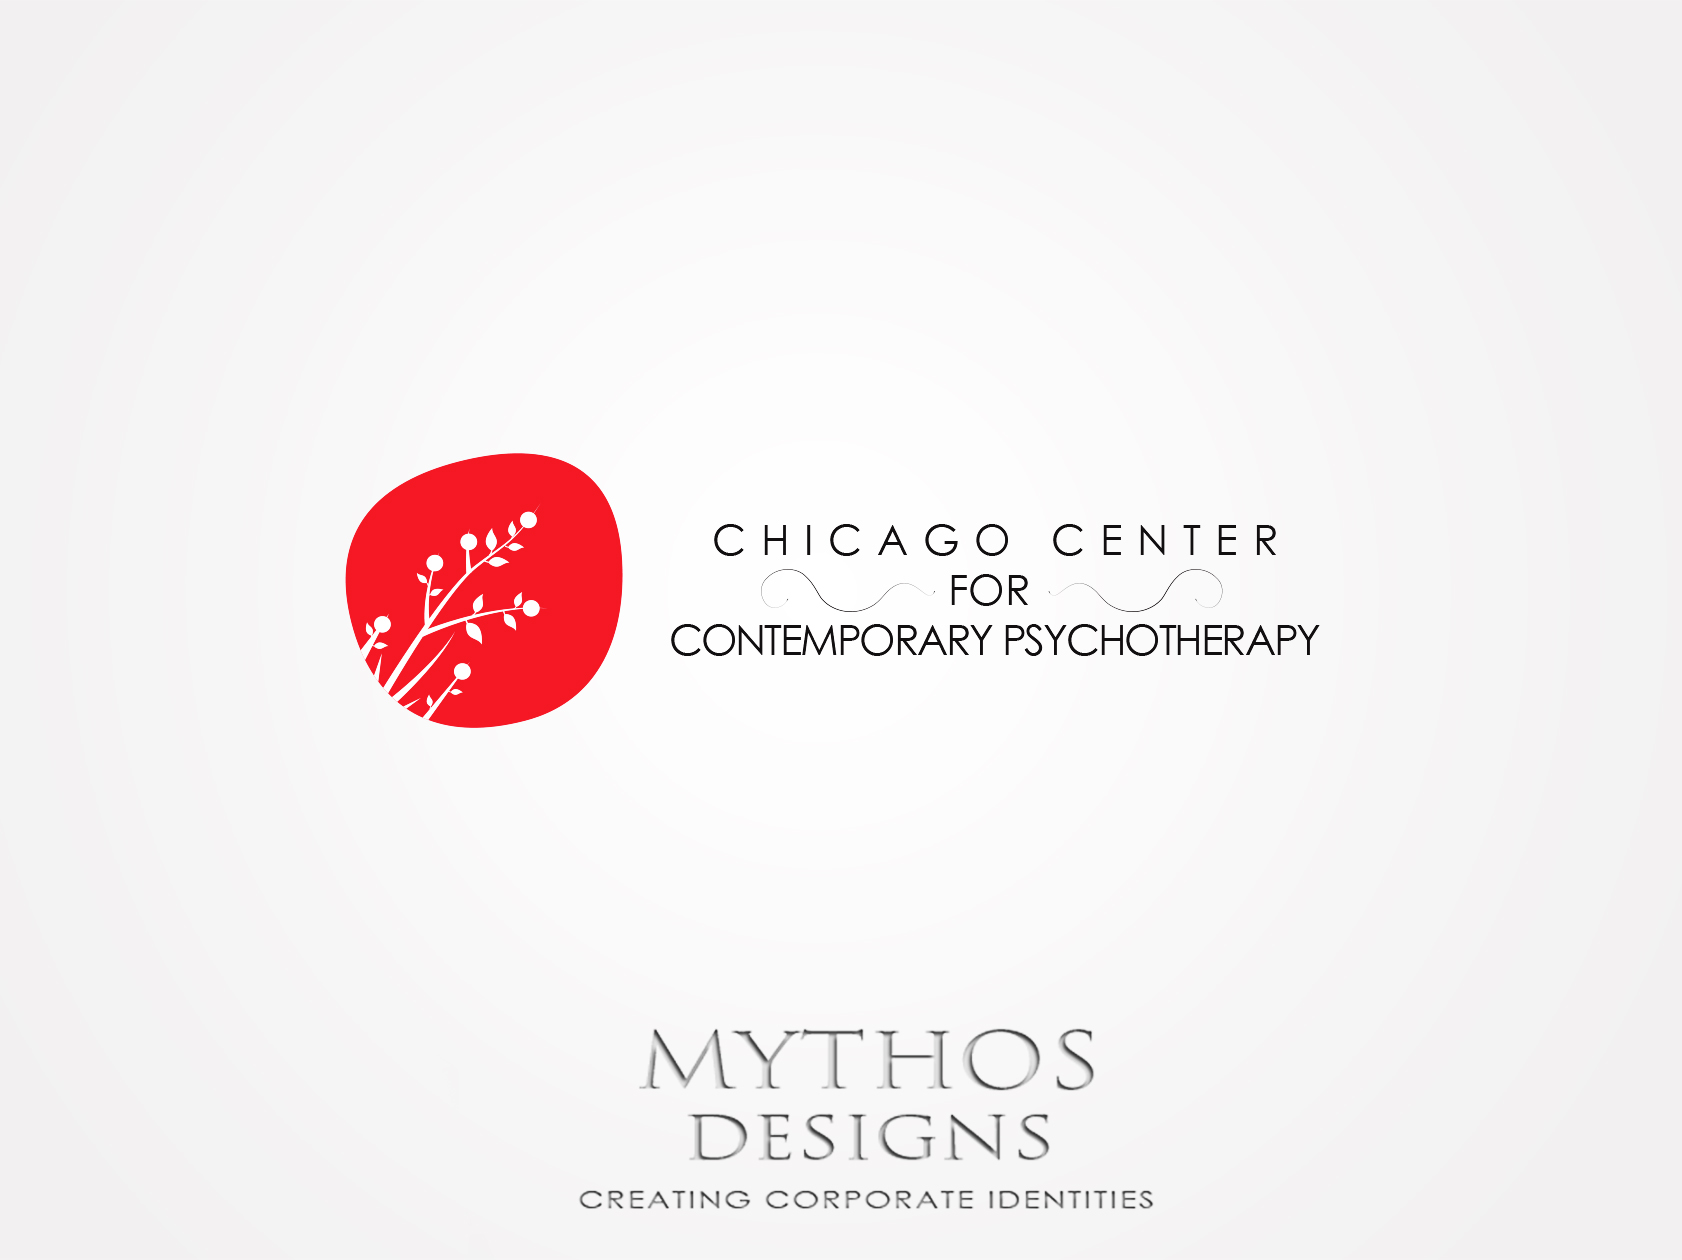 Logo Design by Mythos Designs - Entry No. 48 in the Logo Design Contest Inspiring Logo Design for Chicago Center for Contemporary Psychotherapy.